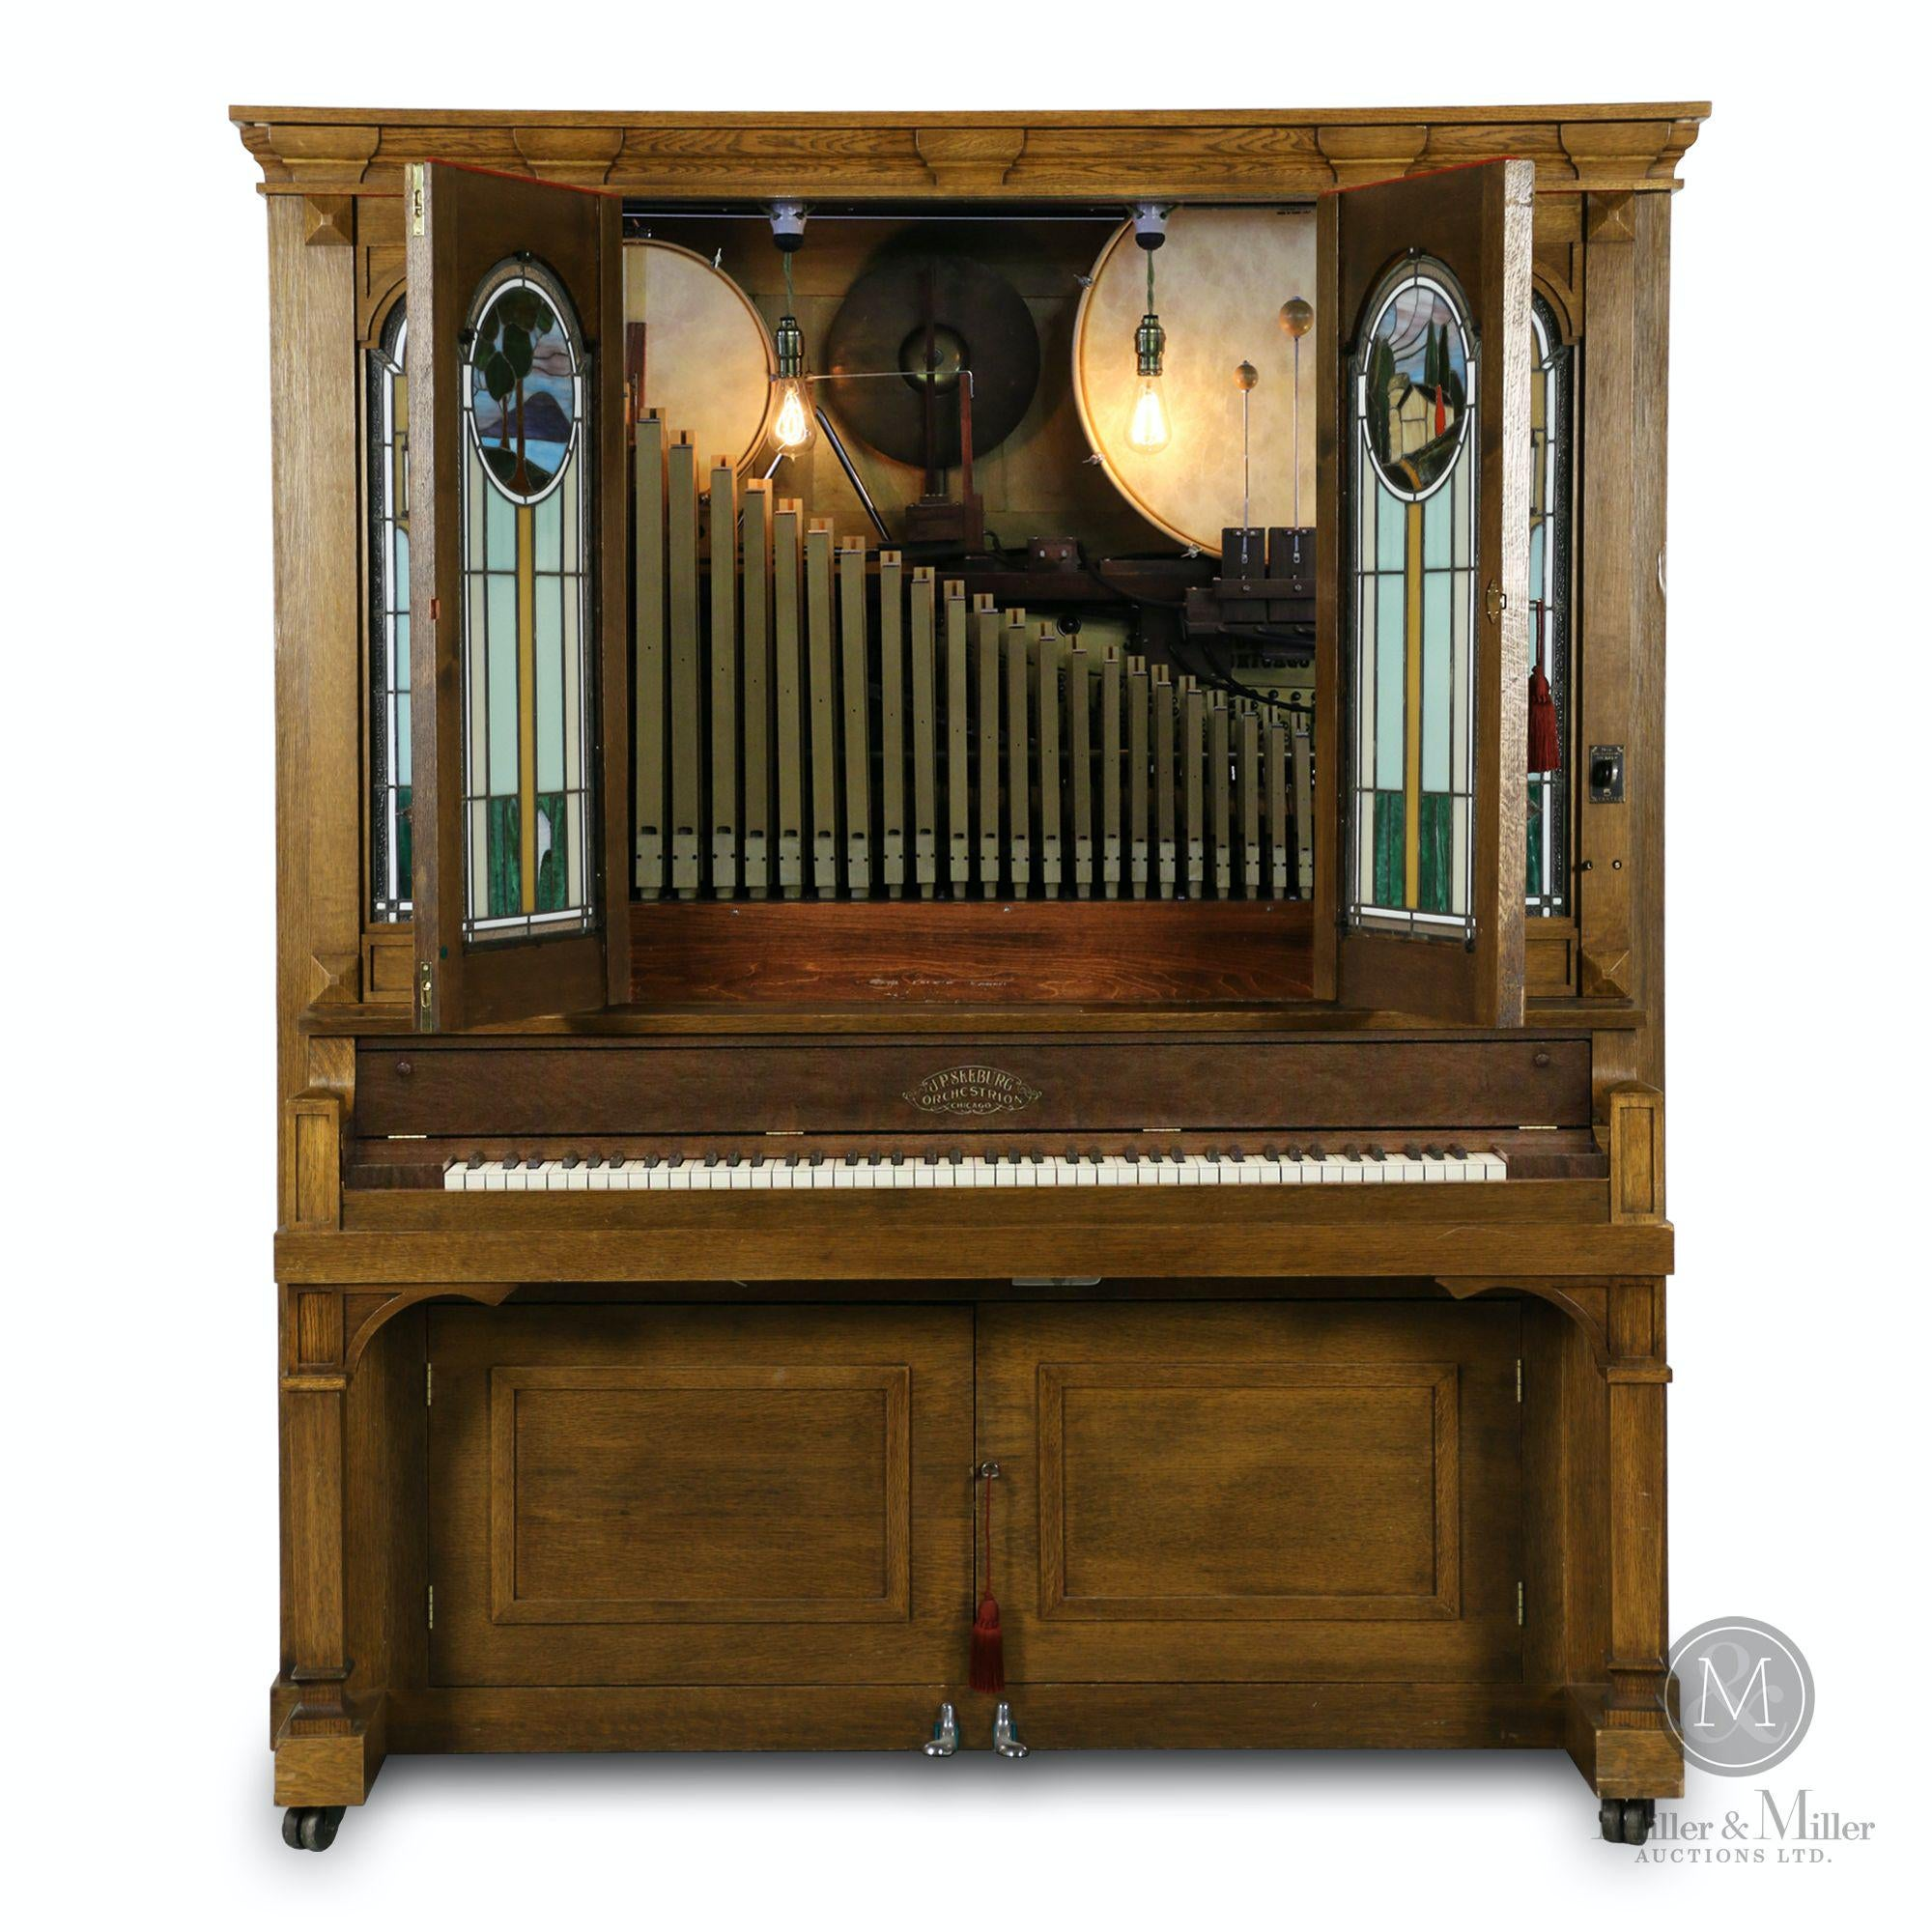 Big Beautiful Music Machines from The 1890s-1940s Dominate The List of Top Lots in Miller  Miller's Sept. 19th Auction